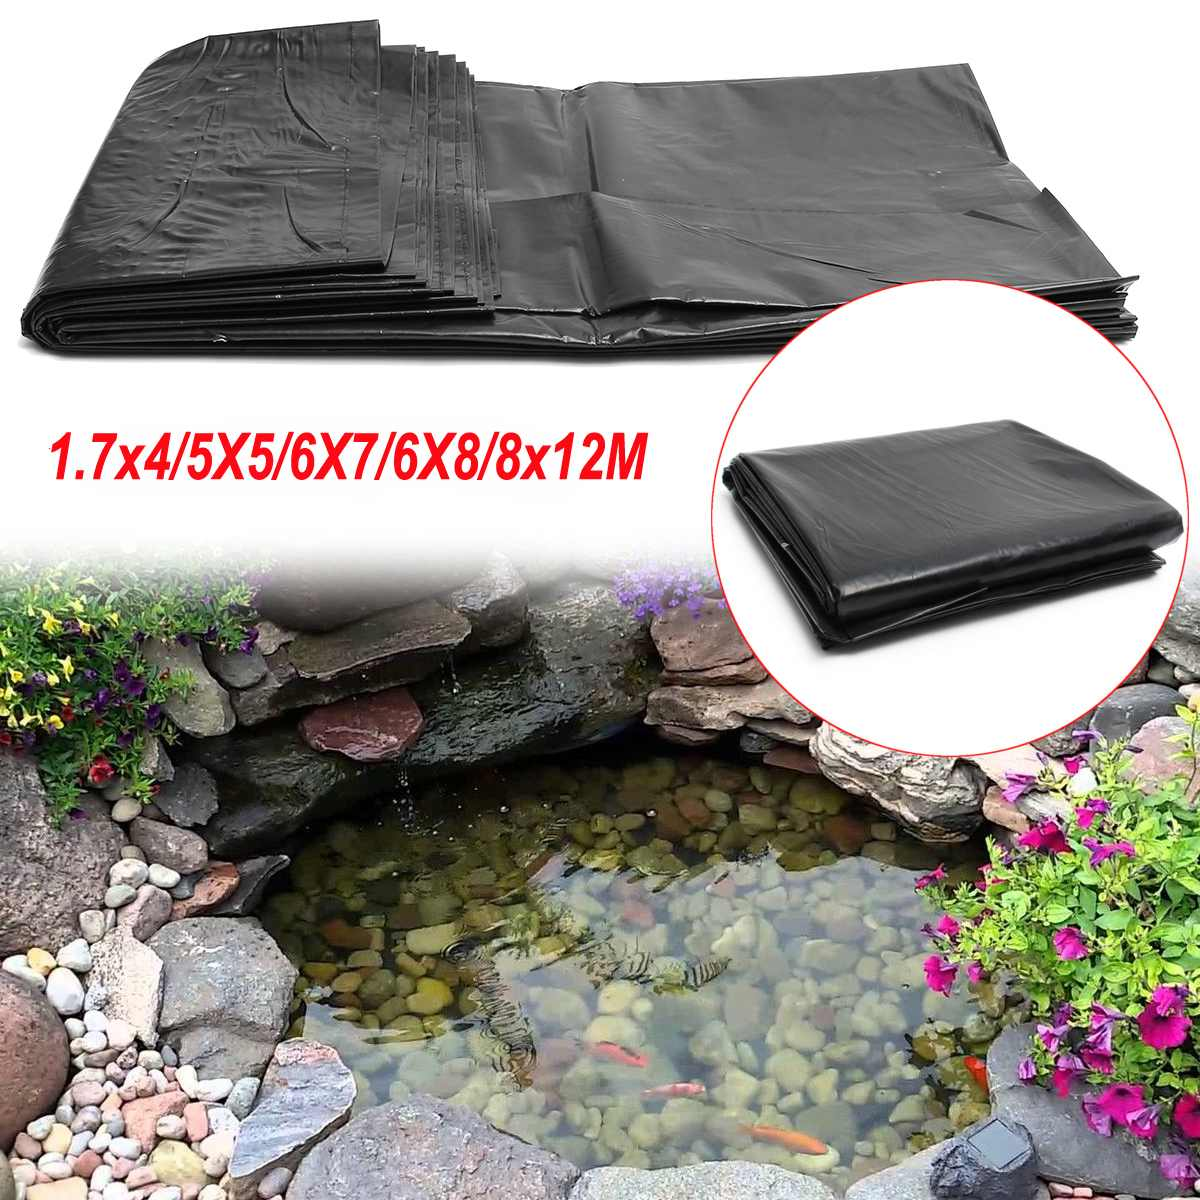 Waterproof-Membrane Pond Liner Rubber HDPE Fish Thick Heavy Multiple-Sizes 6x4m/1.7x4